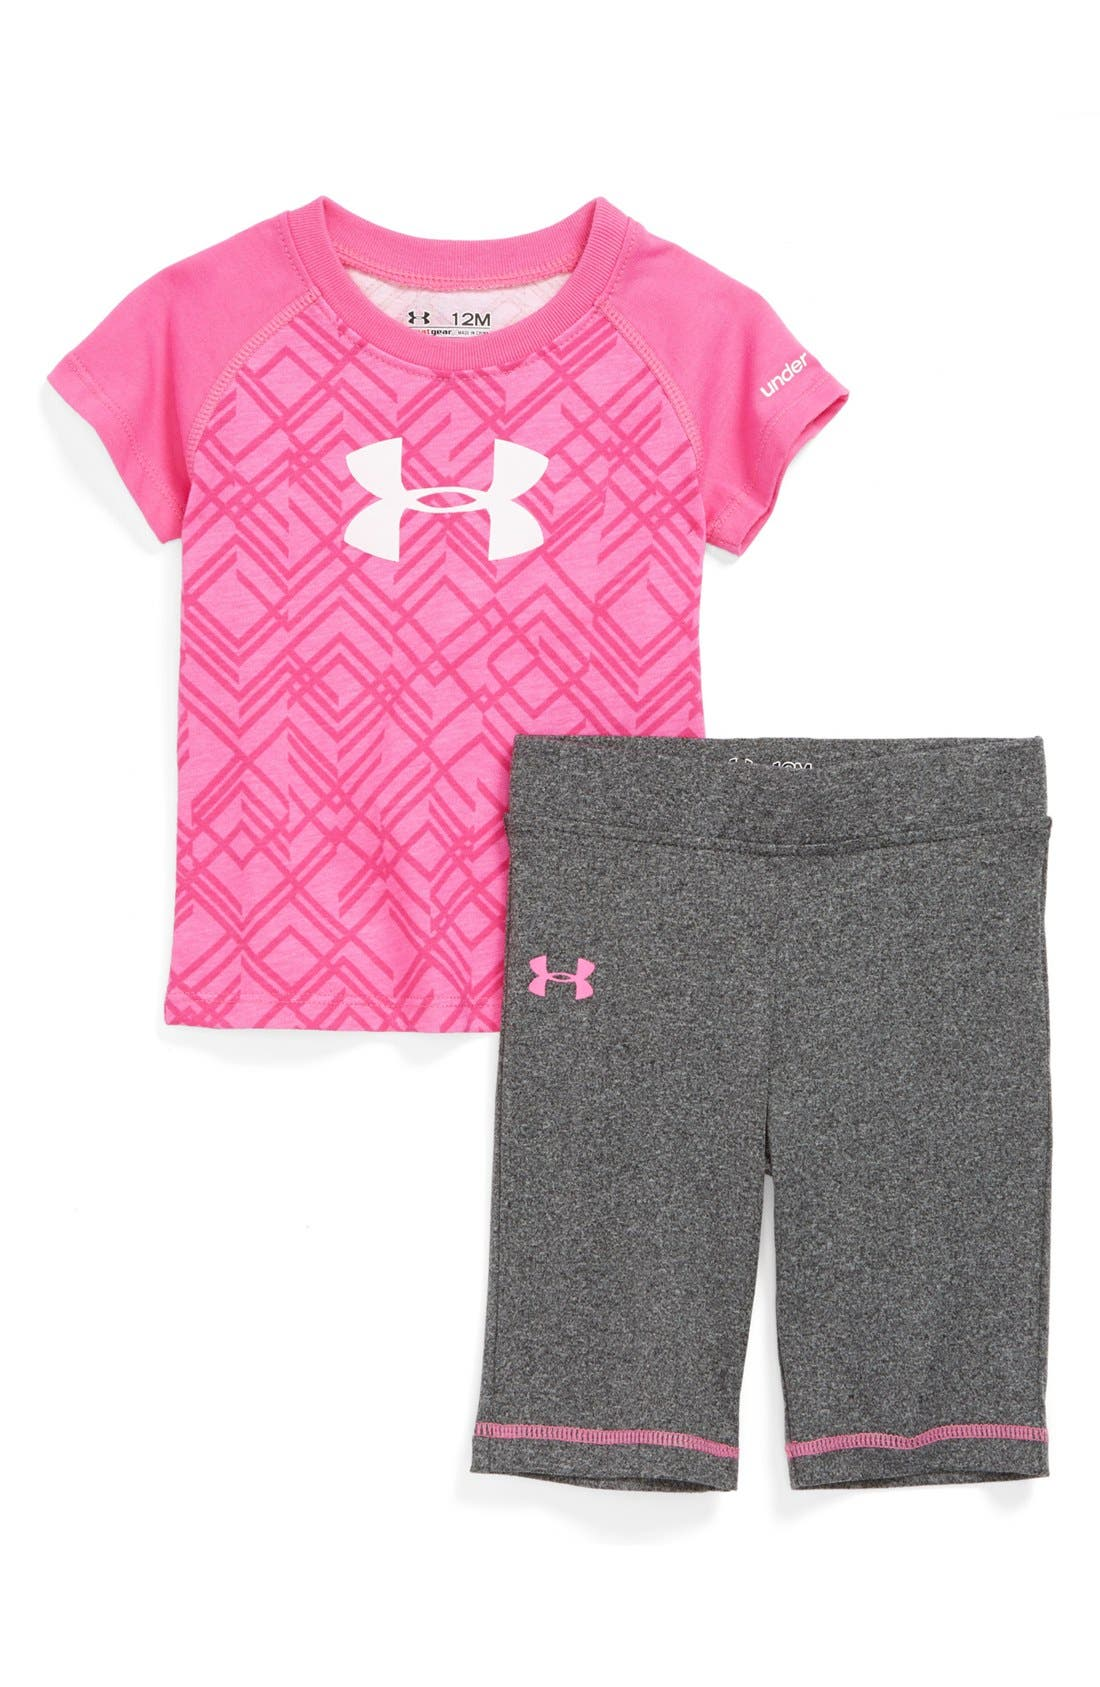 Main Image - Under Armour HeatGear® Tee & Pants (Baby Girls)